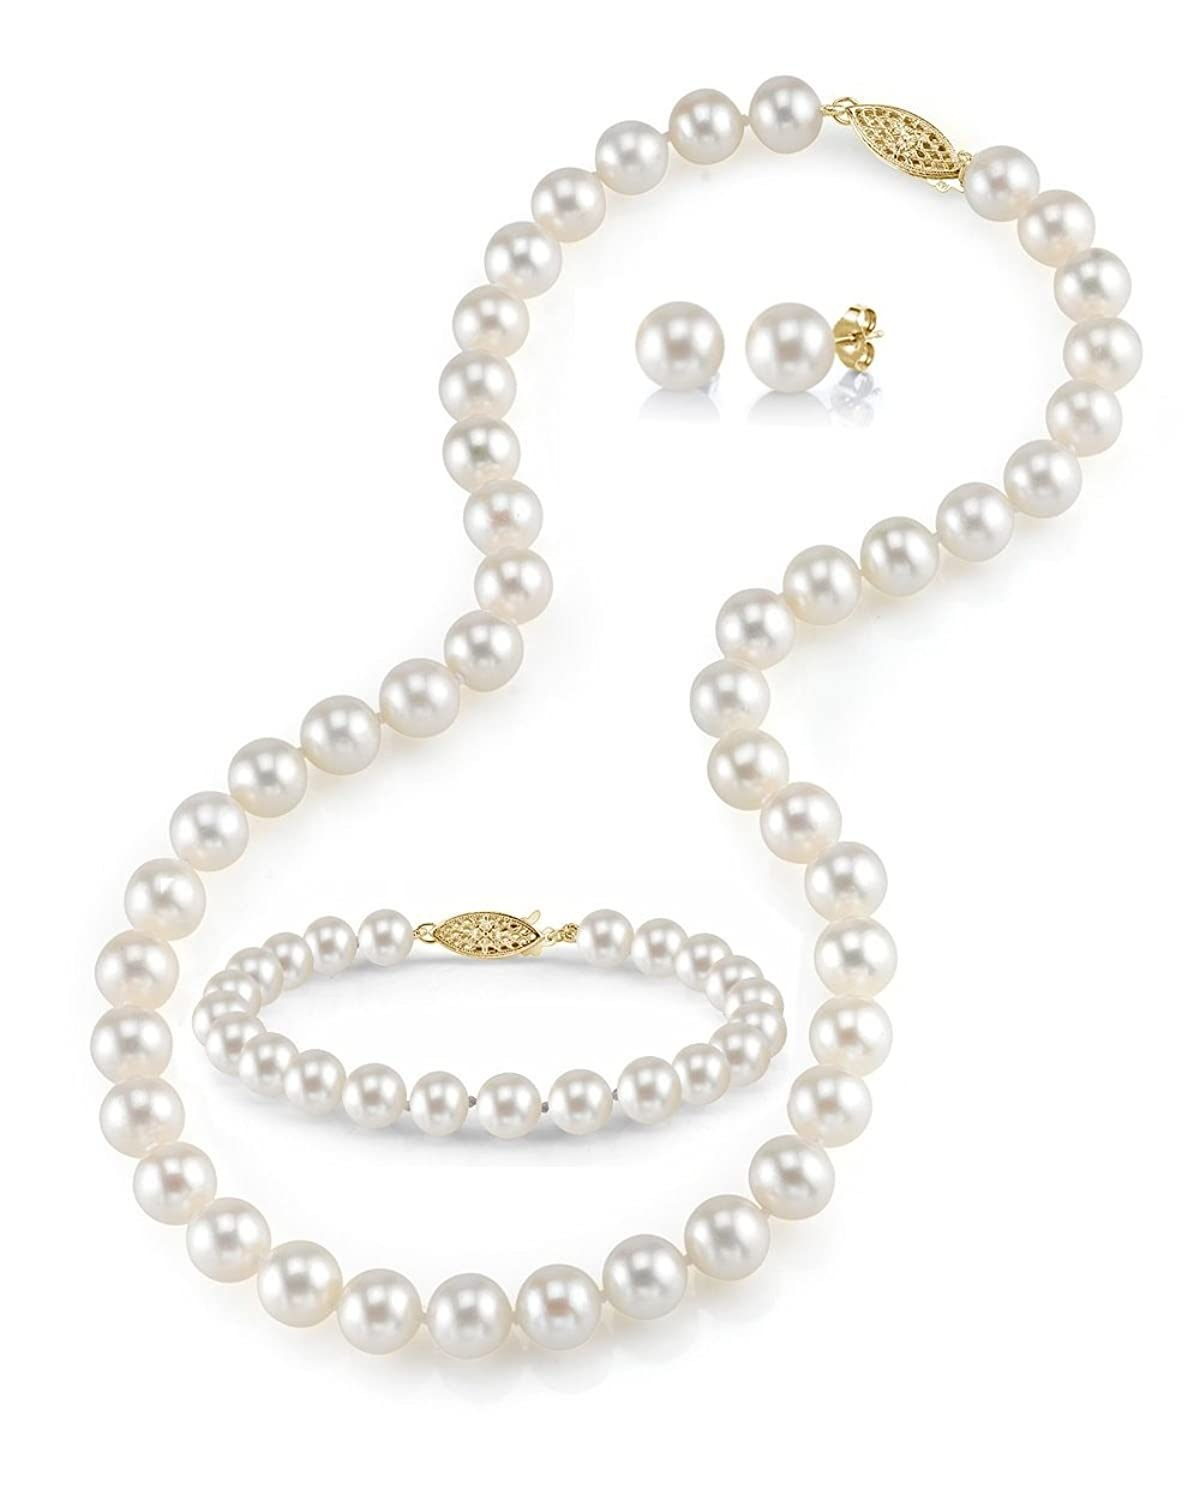 """14K Gold 7-8mm White Freshwater Cultured Pearl Necklace, Bracelet & Earrings Set, 18"""" - AAAA Quality"""